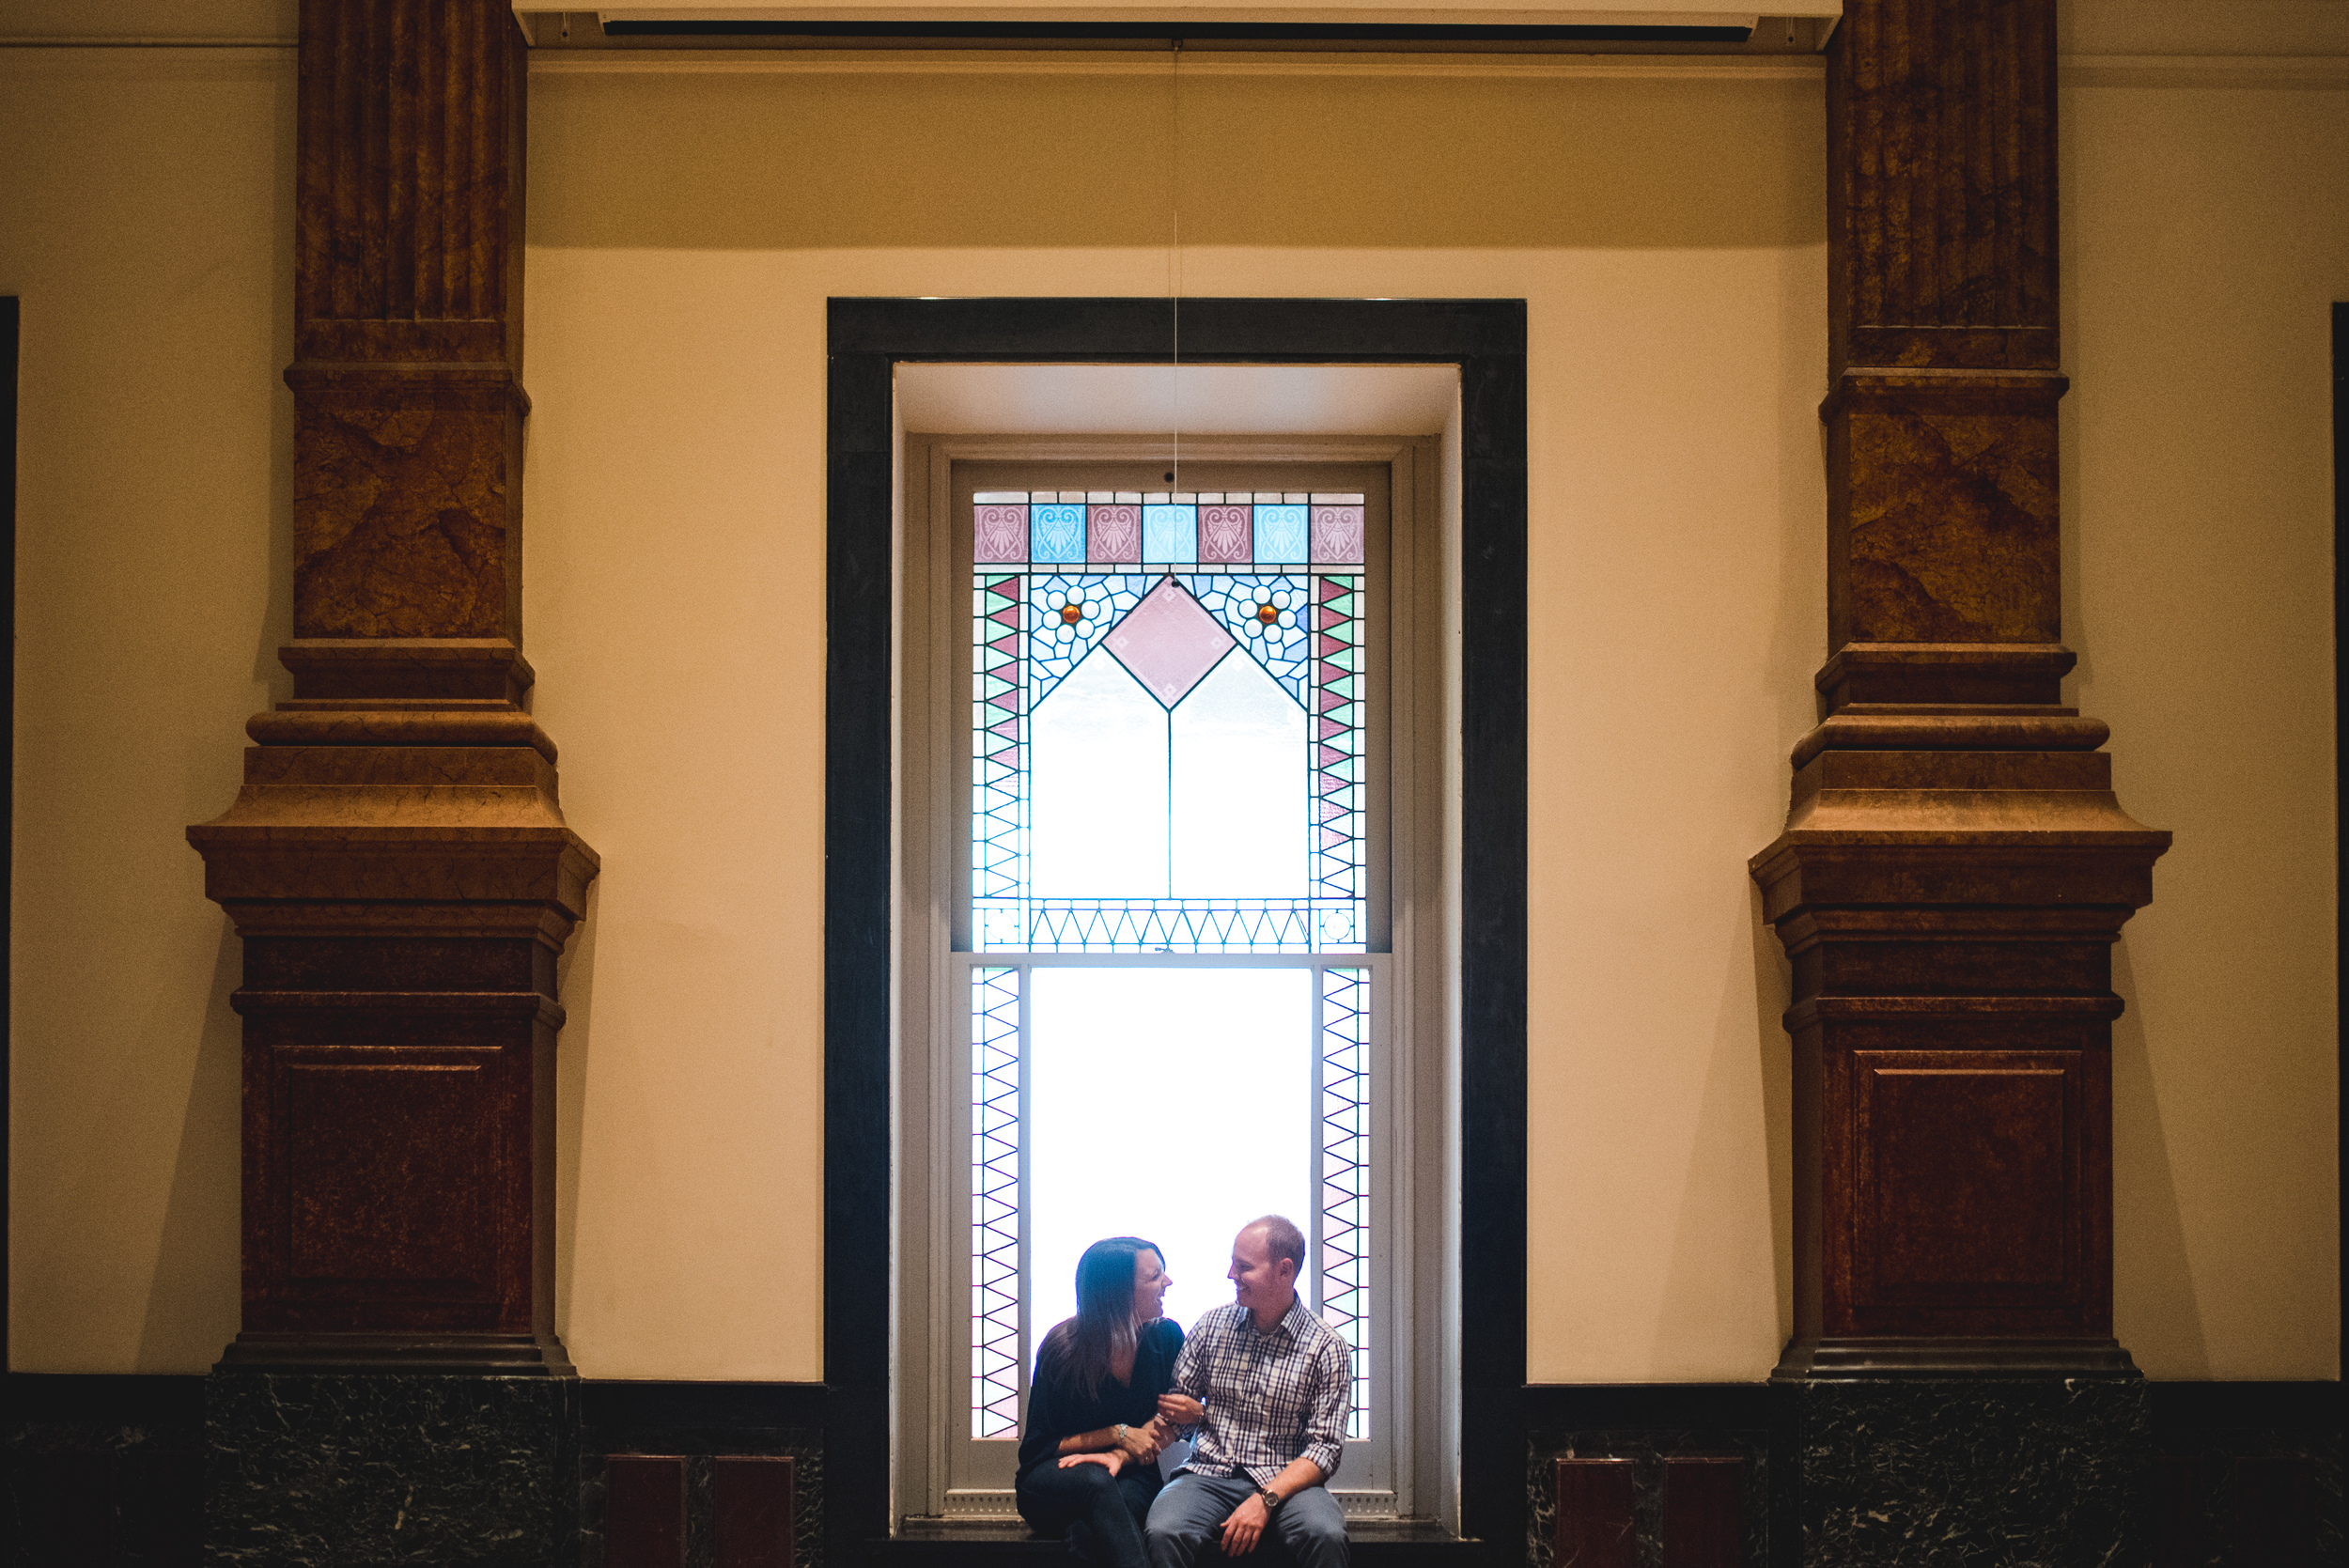 Smithsonian American Art Museum engagement session by Mantas Kubilinskas-10.jpg